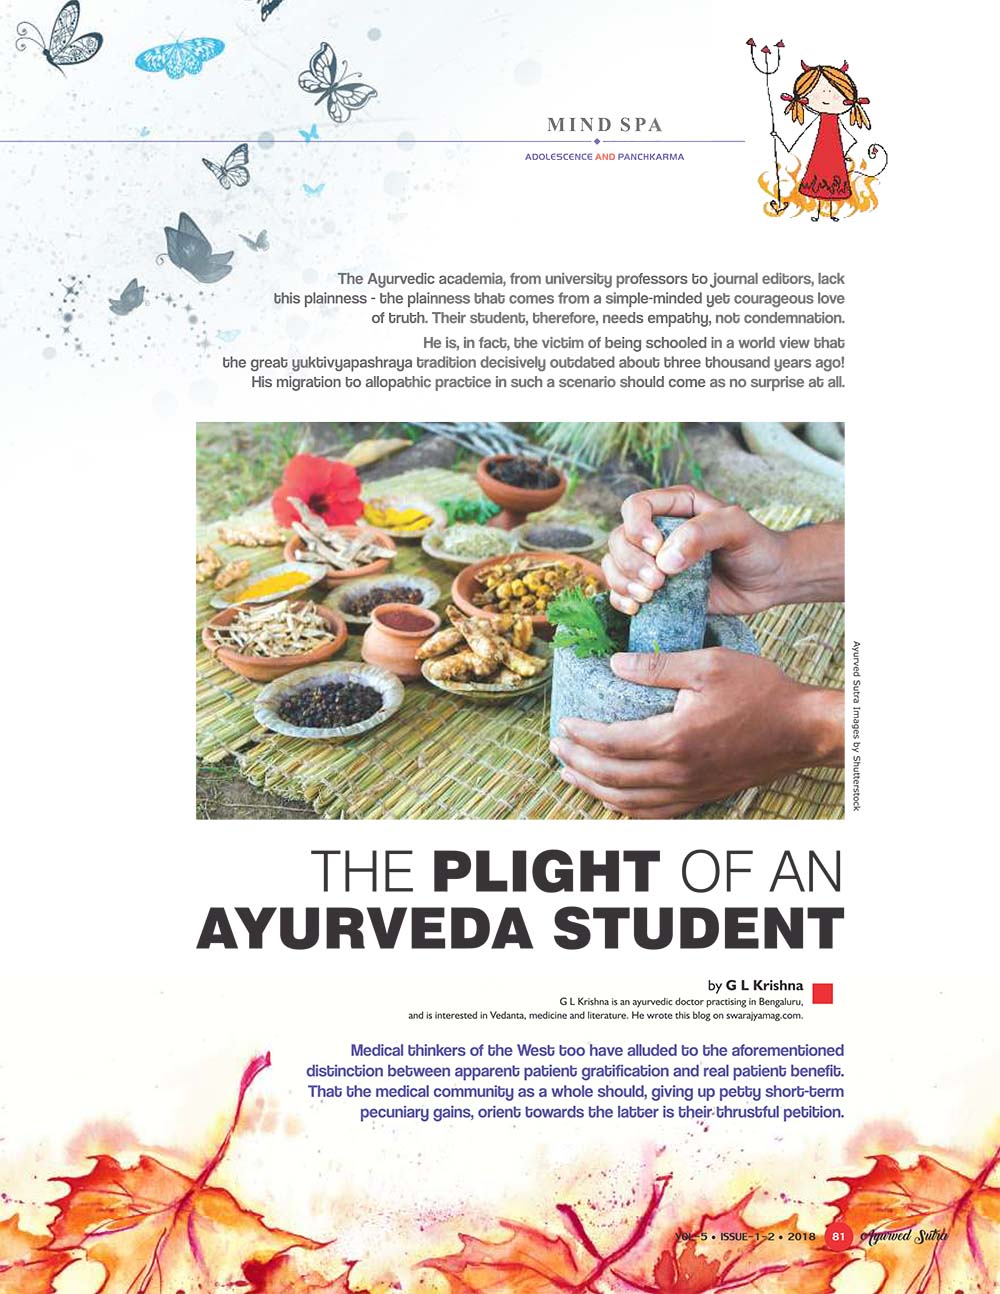 Ayurvedsutra Vol 05 issue 01 02 83 - The plight of an Ayurveda Student